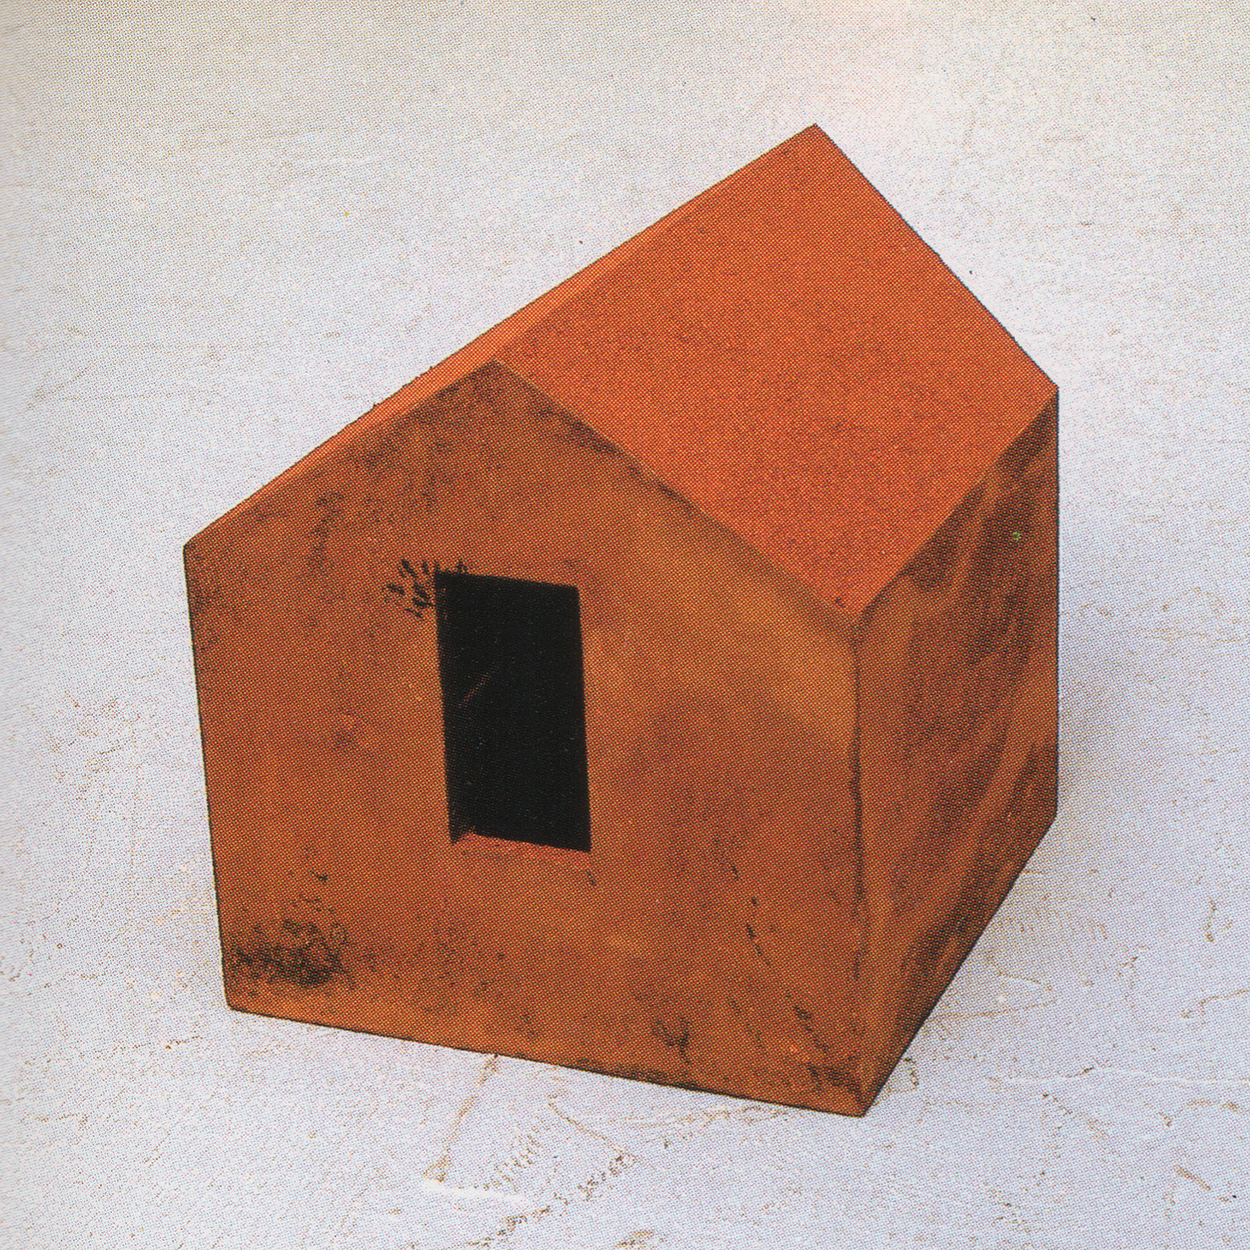 Midnight|iron and red sand|25.4 x 32 x 24 cm|1990